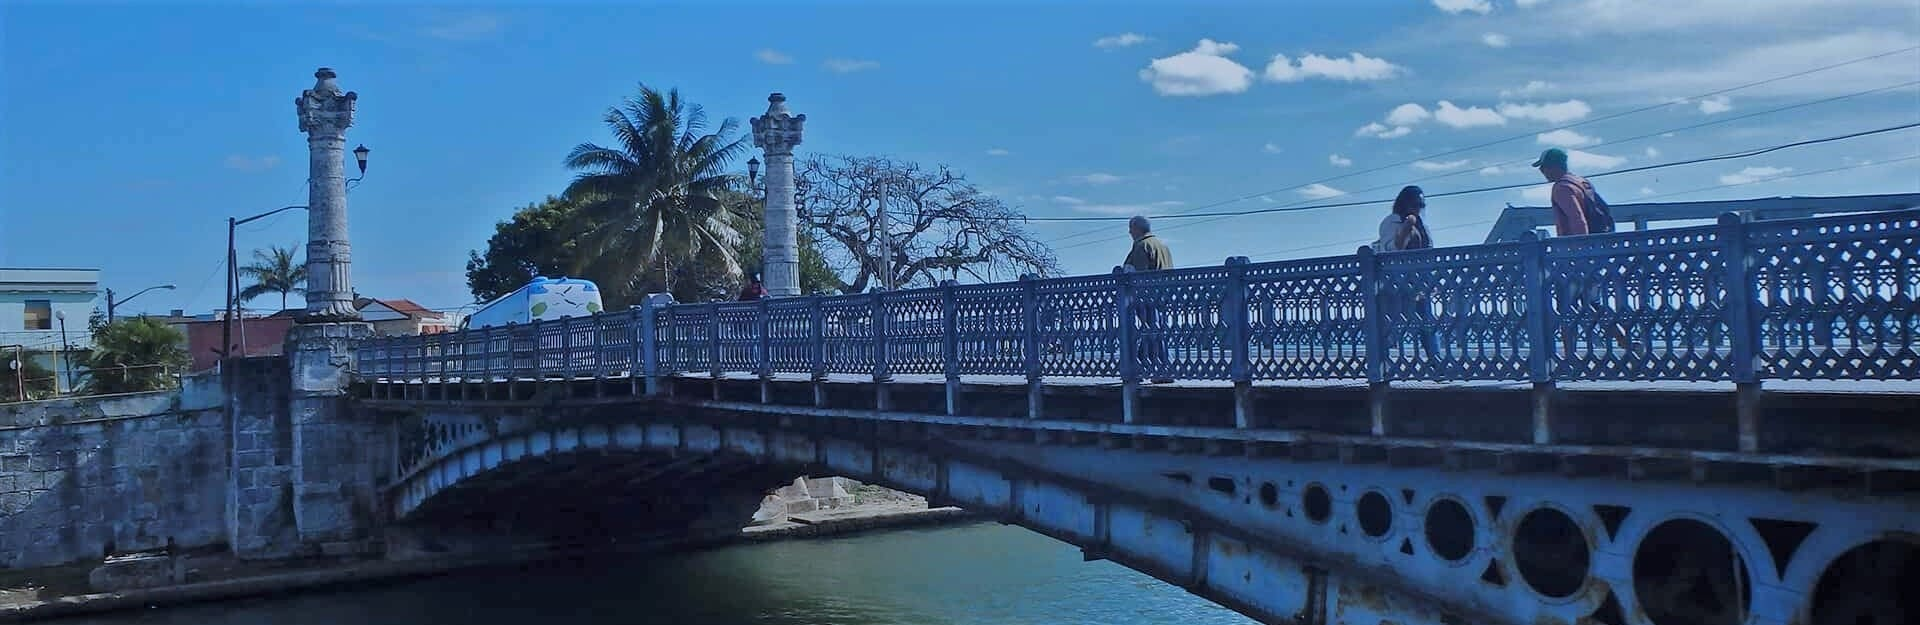 La Concordia Bridge, Matanzas City, Cuba